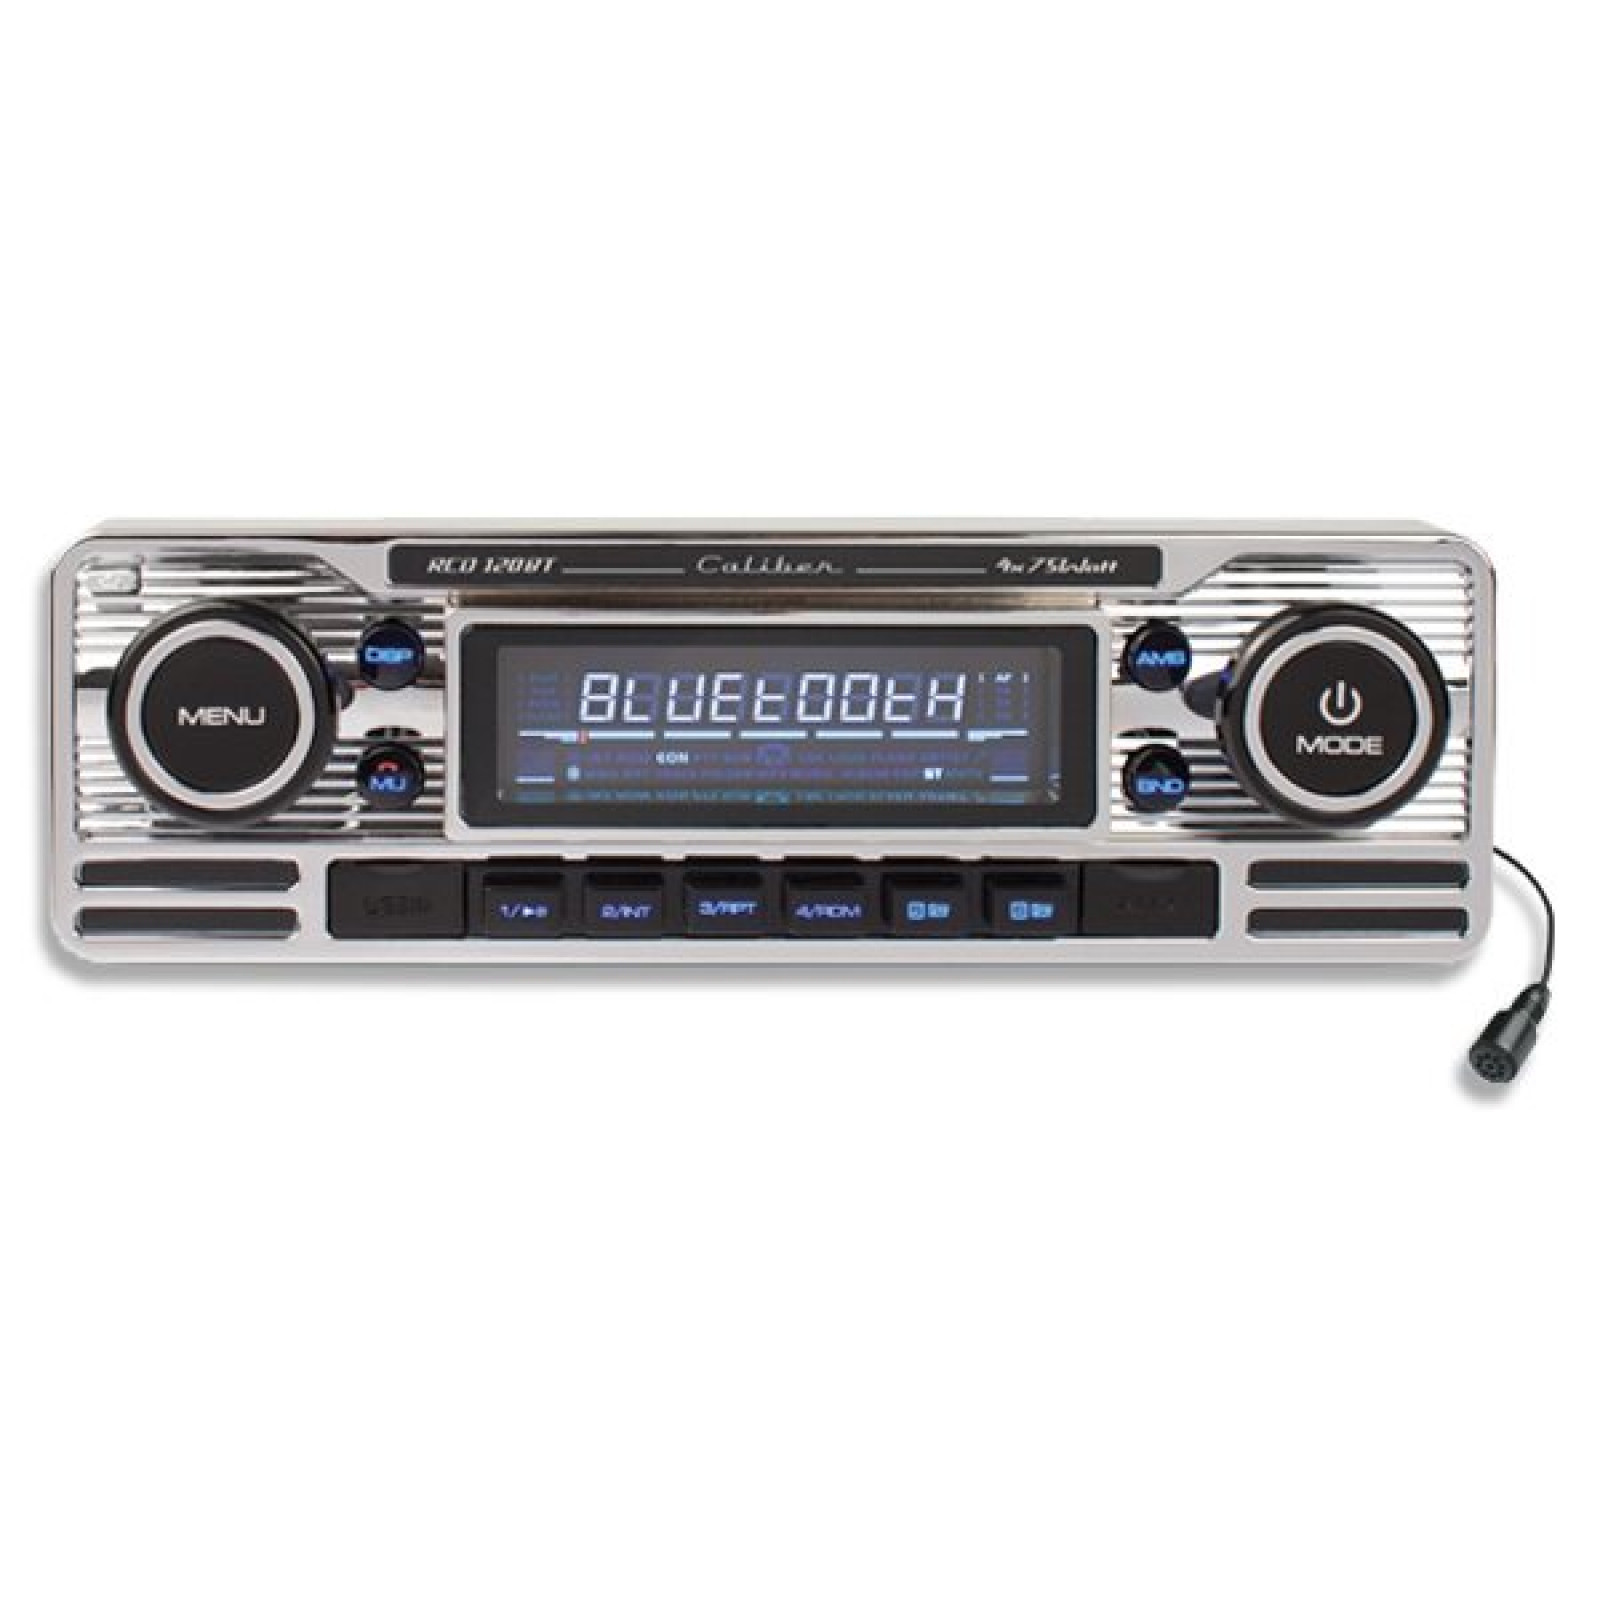 caliber cd120bt classic retro style single din radio cd mp3 usb player stereo head unit silver. Black Bedroom Furniture Sets. Home Design Ideas